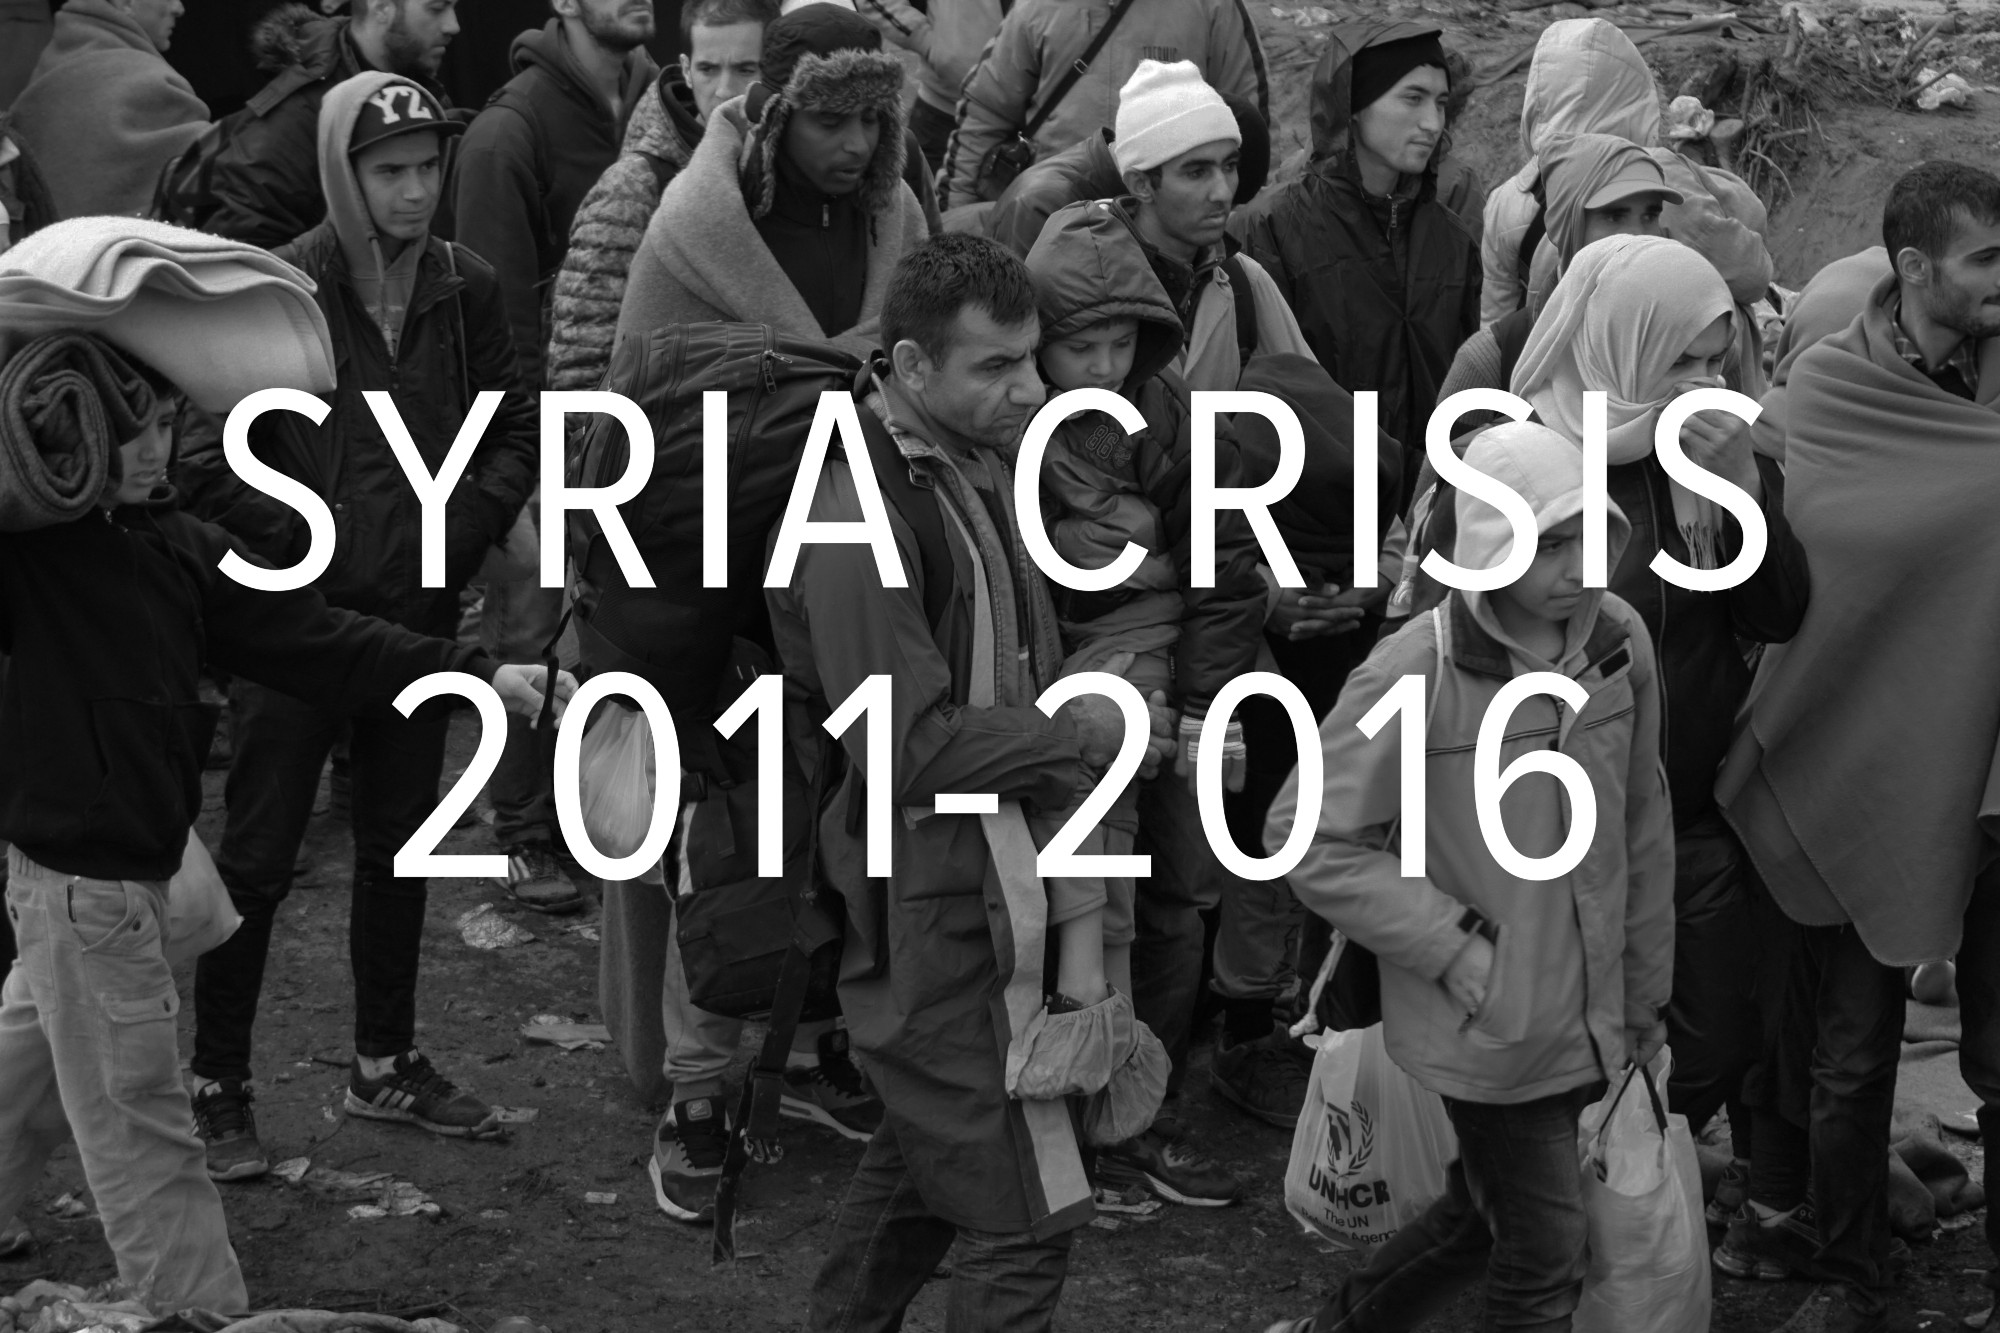 the syrian crisis Syria is the biggest humanitarian and refugee crisis of our time, a continuing cause of suffering for millions which should be garnering a groundswell of support around the world filippo grandi, unhcr high commissioner.